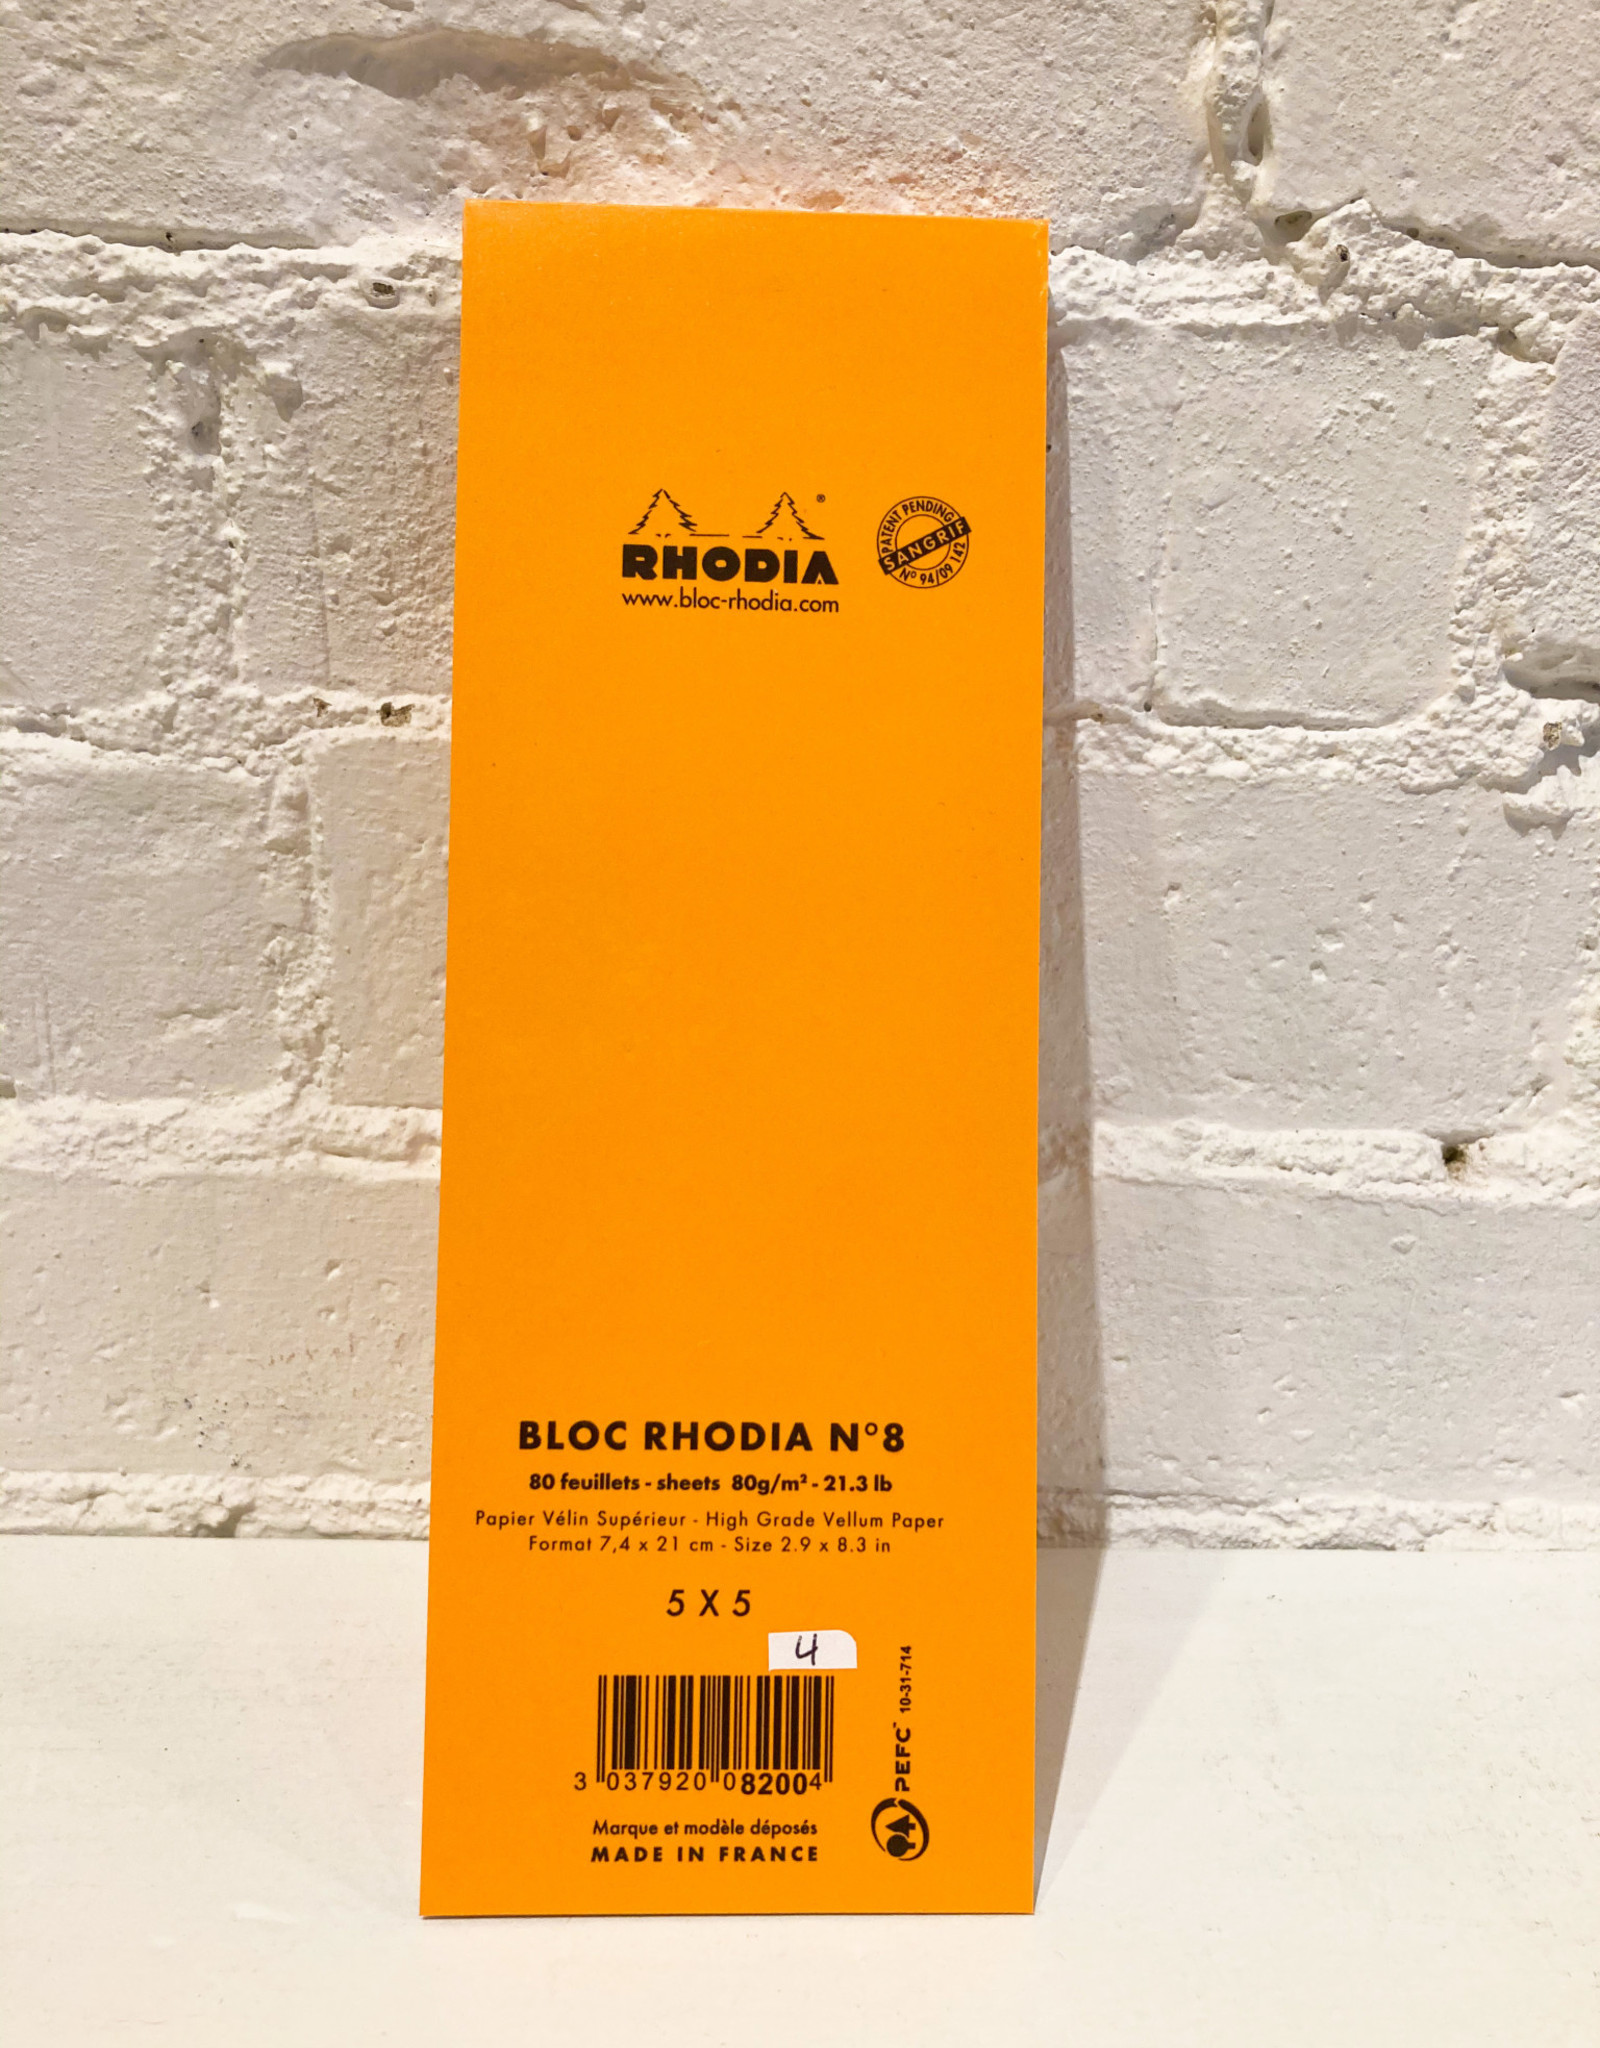 Rhodia Bloc Rhodia #8 Orange